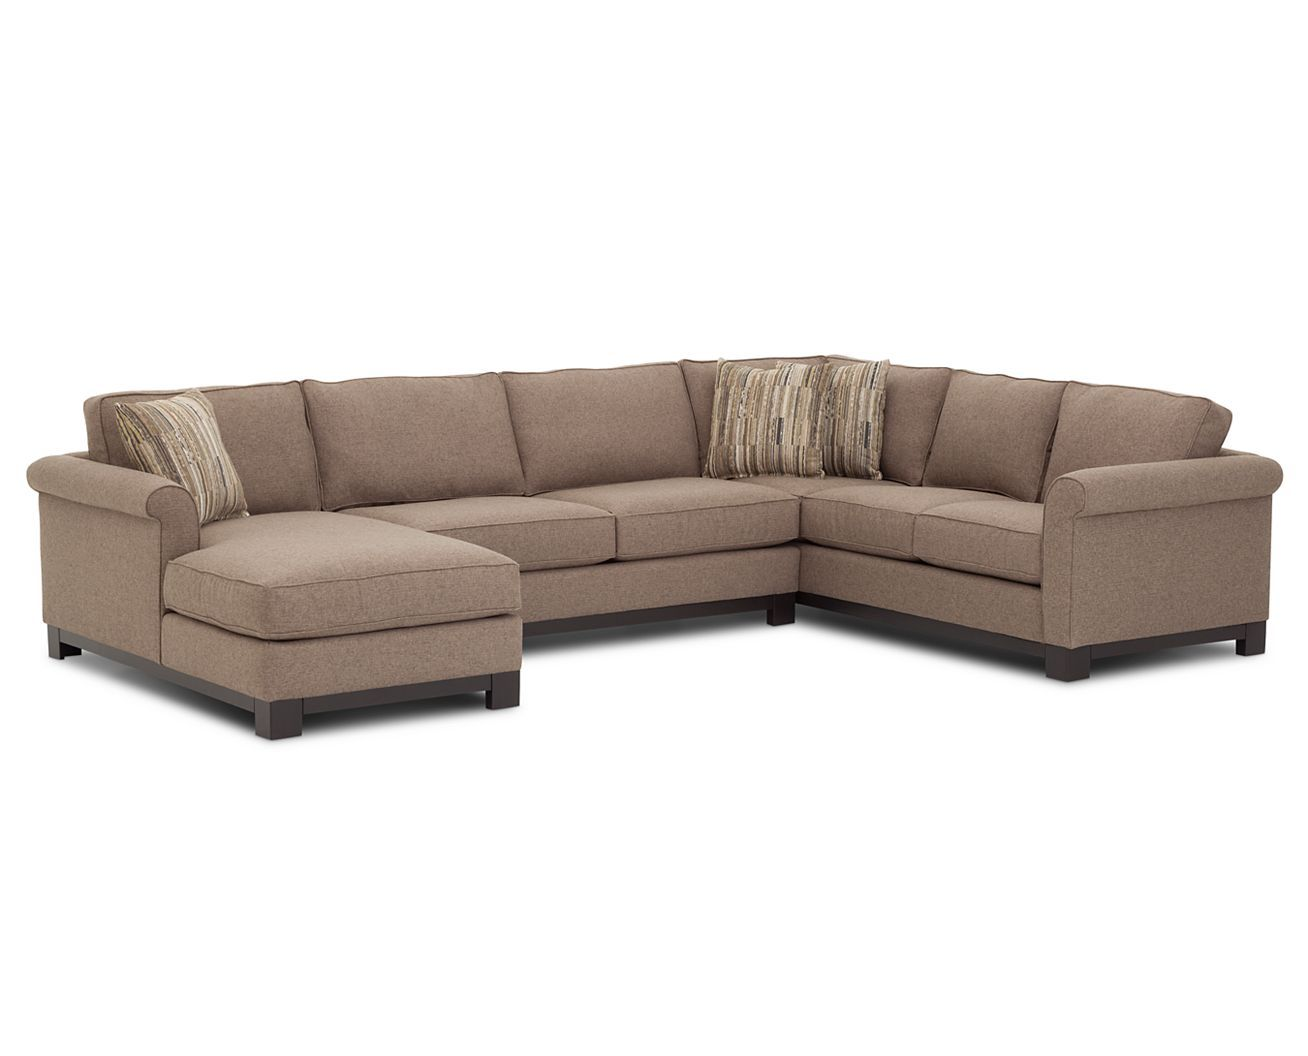 Awesome Best Sofa Mart Sectional 96 For